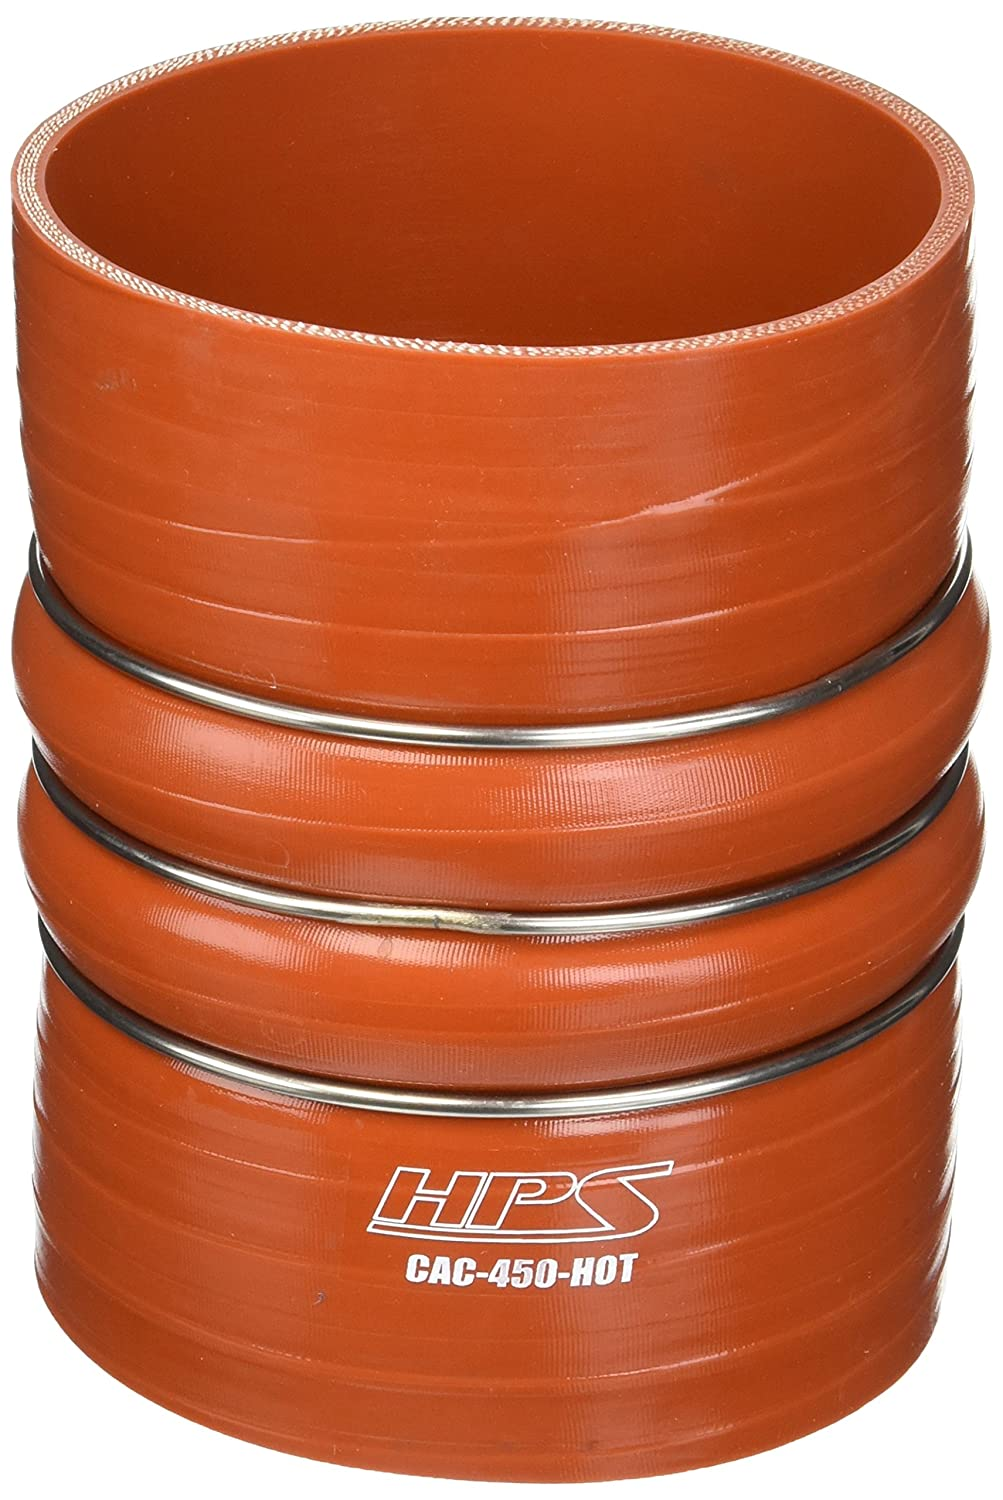 6 Length 100 PSI Maximum Pressure Orange 6 Length 4-1//2 ID HPS Silicone Hoses HPS CAC-450-HOT Silicone High Temperature 4-ply Aramid Reinforced Charge Air Cooler CAC Hose Hot Side 4-1//2 ID